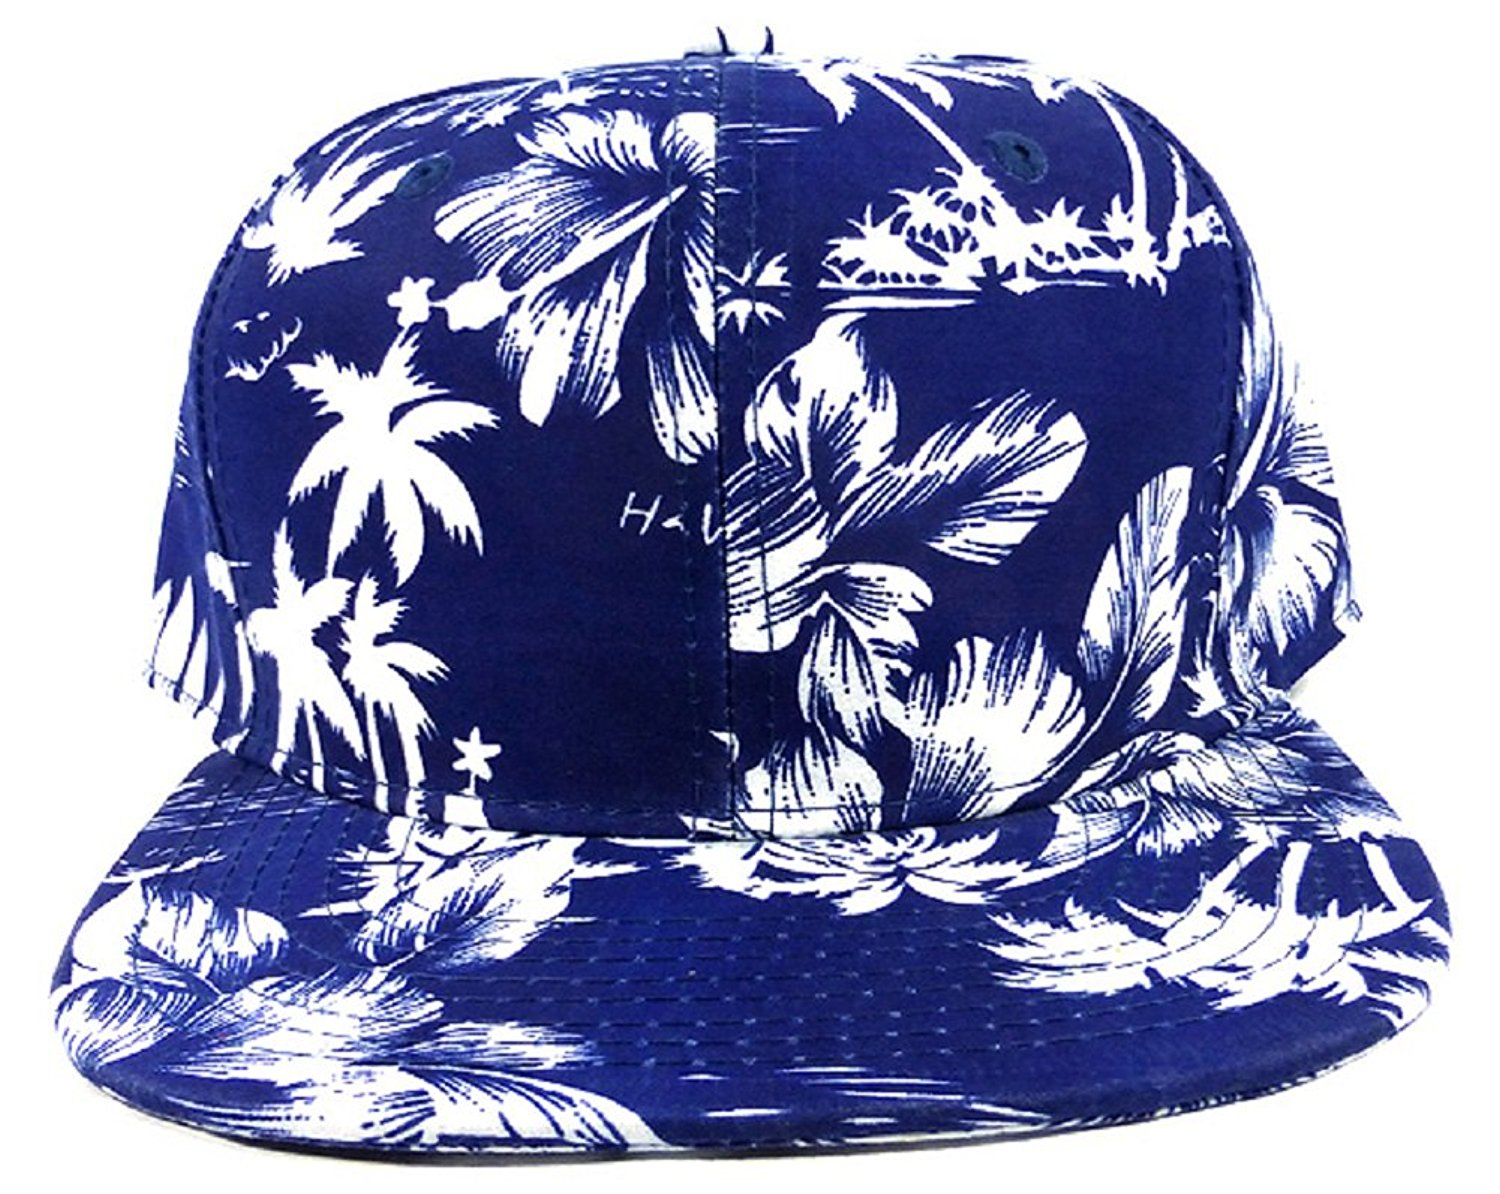 ab500b4d47e Get Quotations · Blue Silhouette Floral Hawaiian Print Snapback Hat Cap